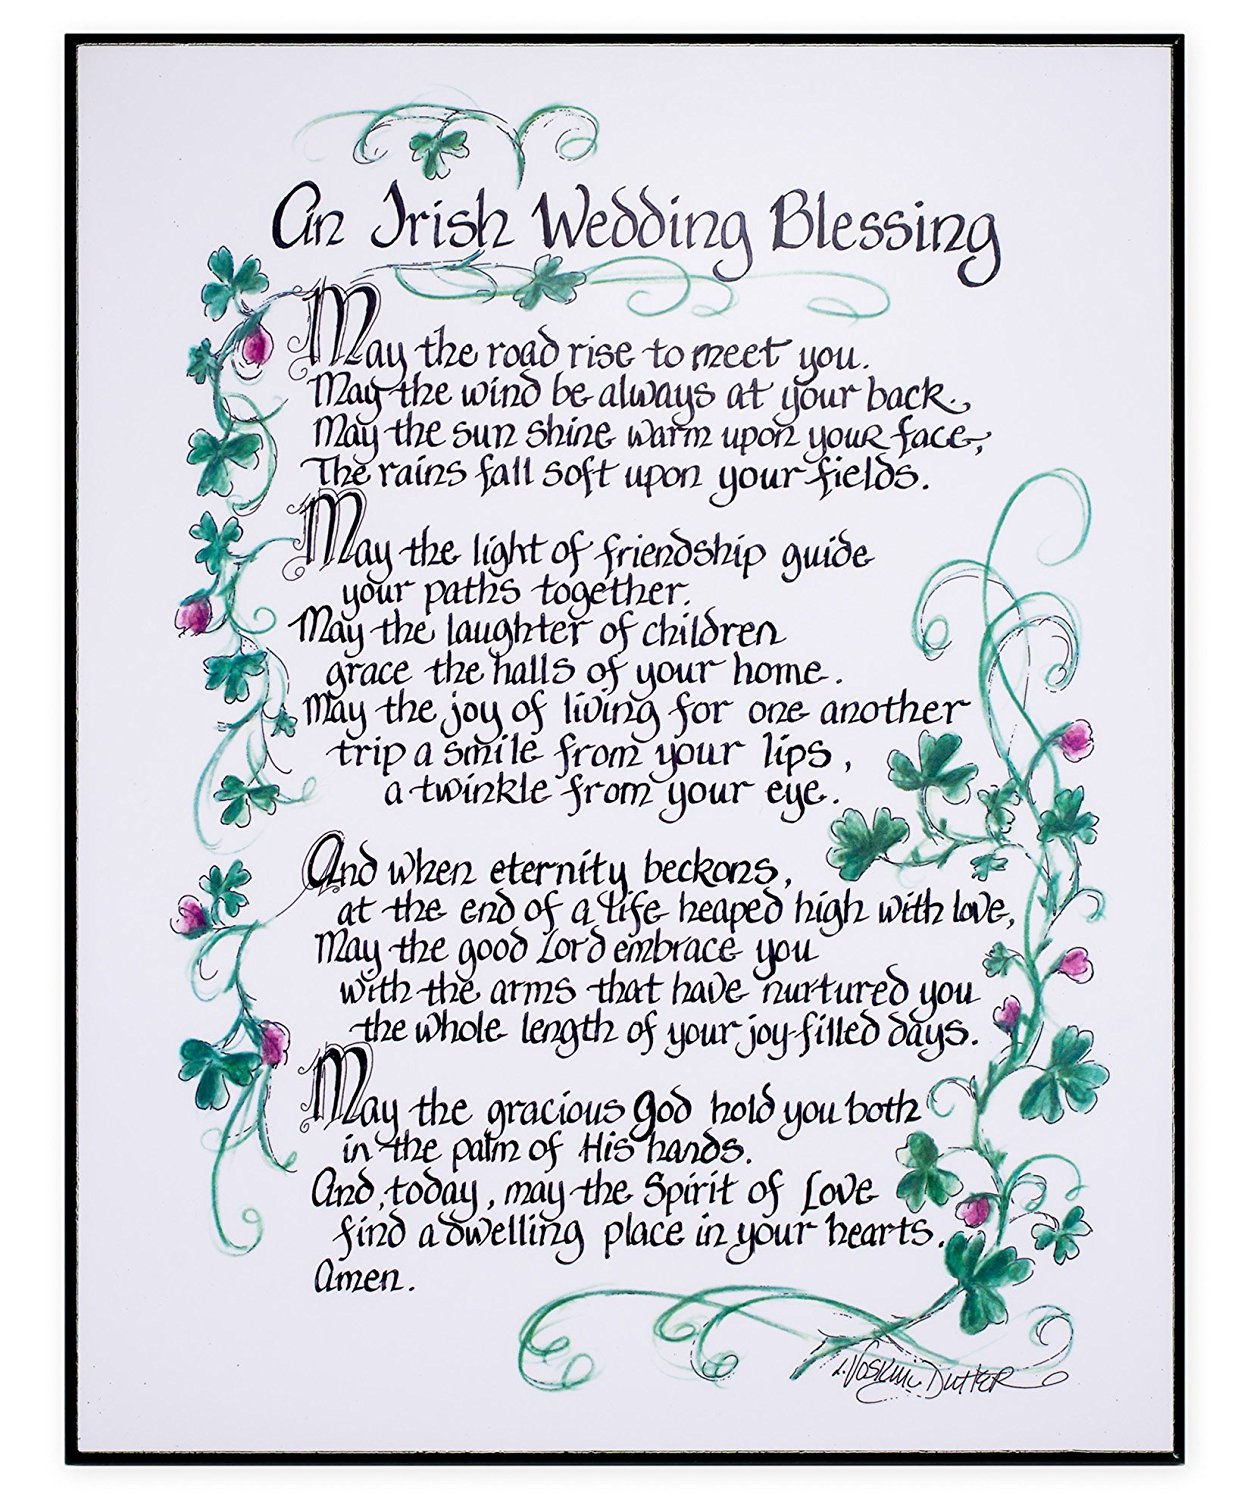 Wedding Traditions and Meanings Irish Wedding Blessings